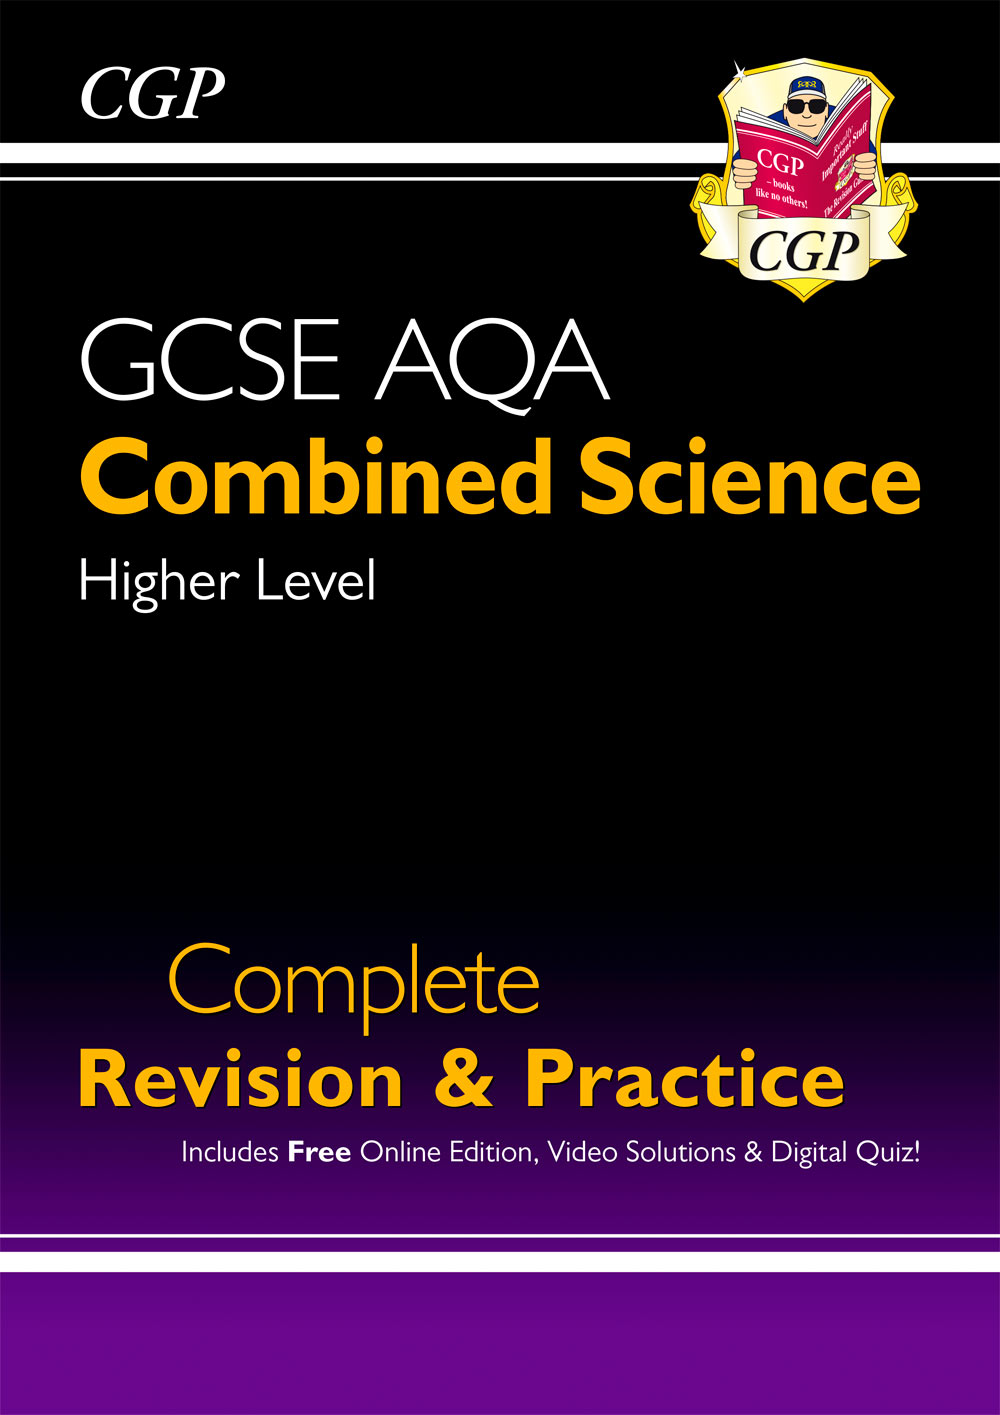 SCAHS42 - New GCSE Combined Science AQA Higher Complete Revision & Practice w/ Online Ed, Videos & Q